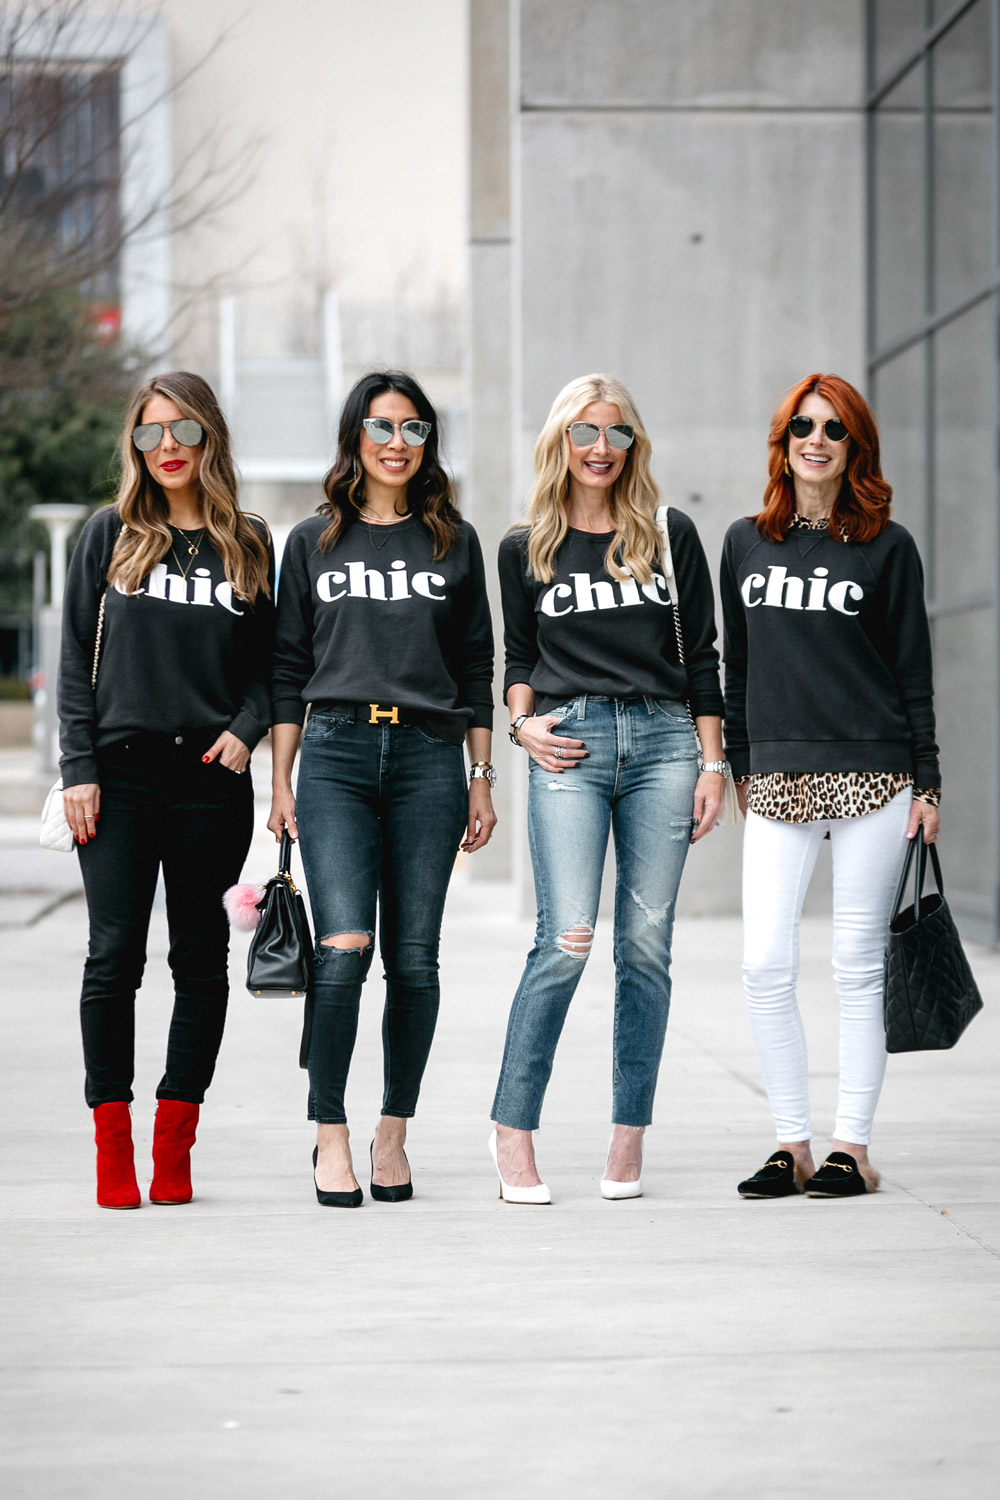 style at any age, how to look chic in a sweatshirt